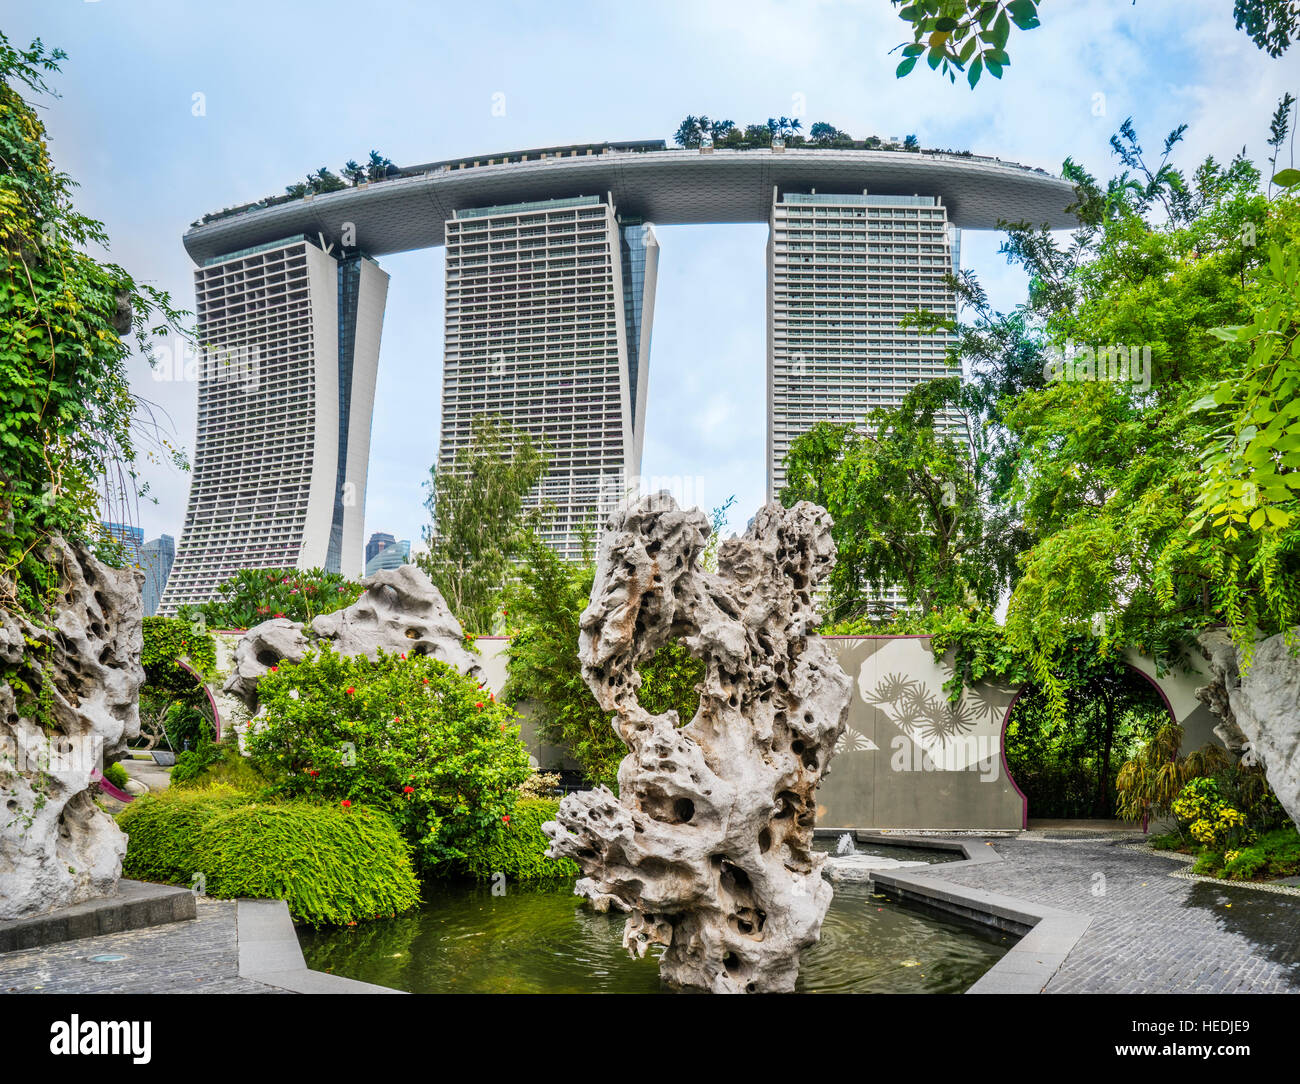 Singapore, sculptured rock at Gardens by the Bay against the backdrop of the Marina Bay Sands resort - Stock Image